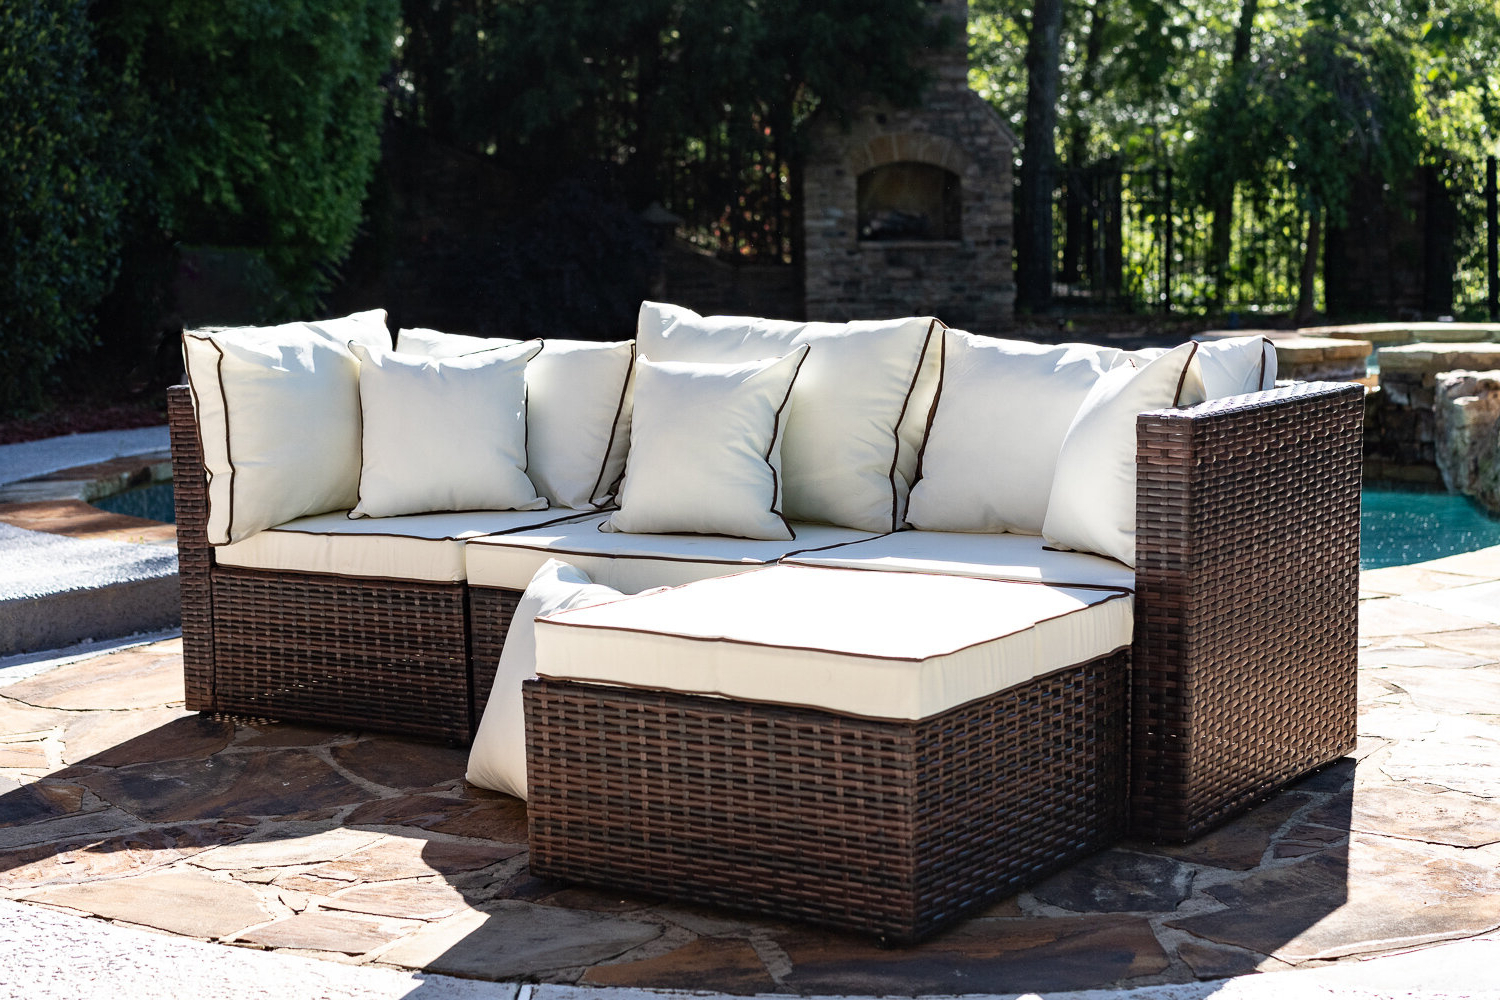 Fashionable Burruss Patio Sectional With Cushions Pertaining To Eldora Patio Sectionals With Cushions (View 10 of 25)